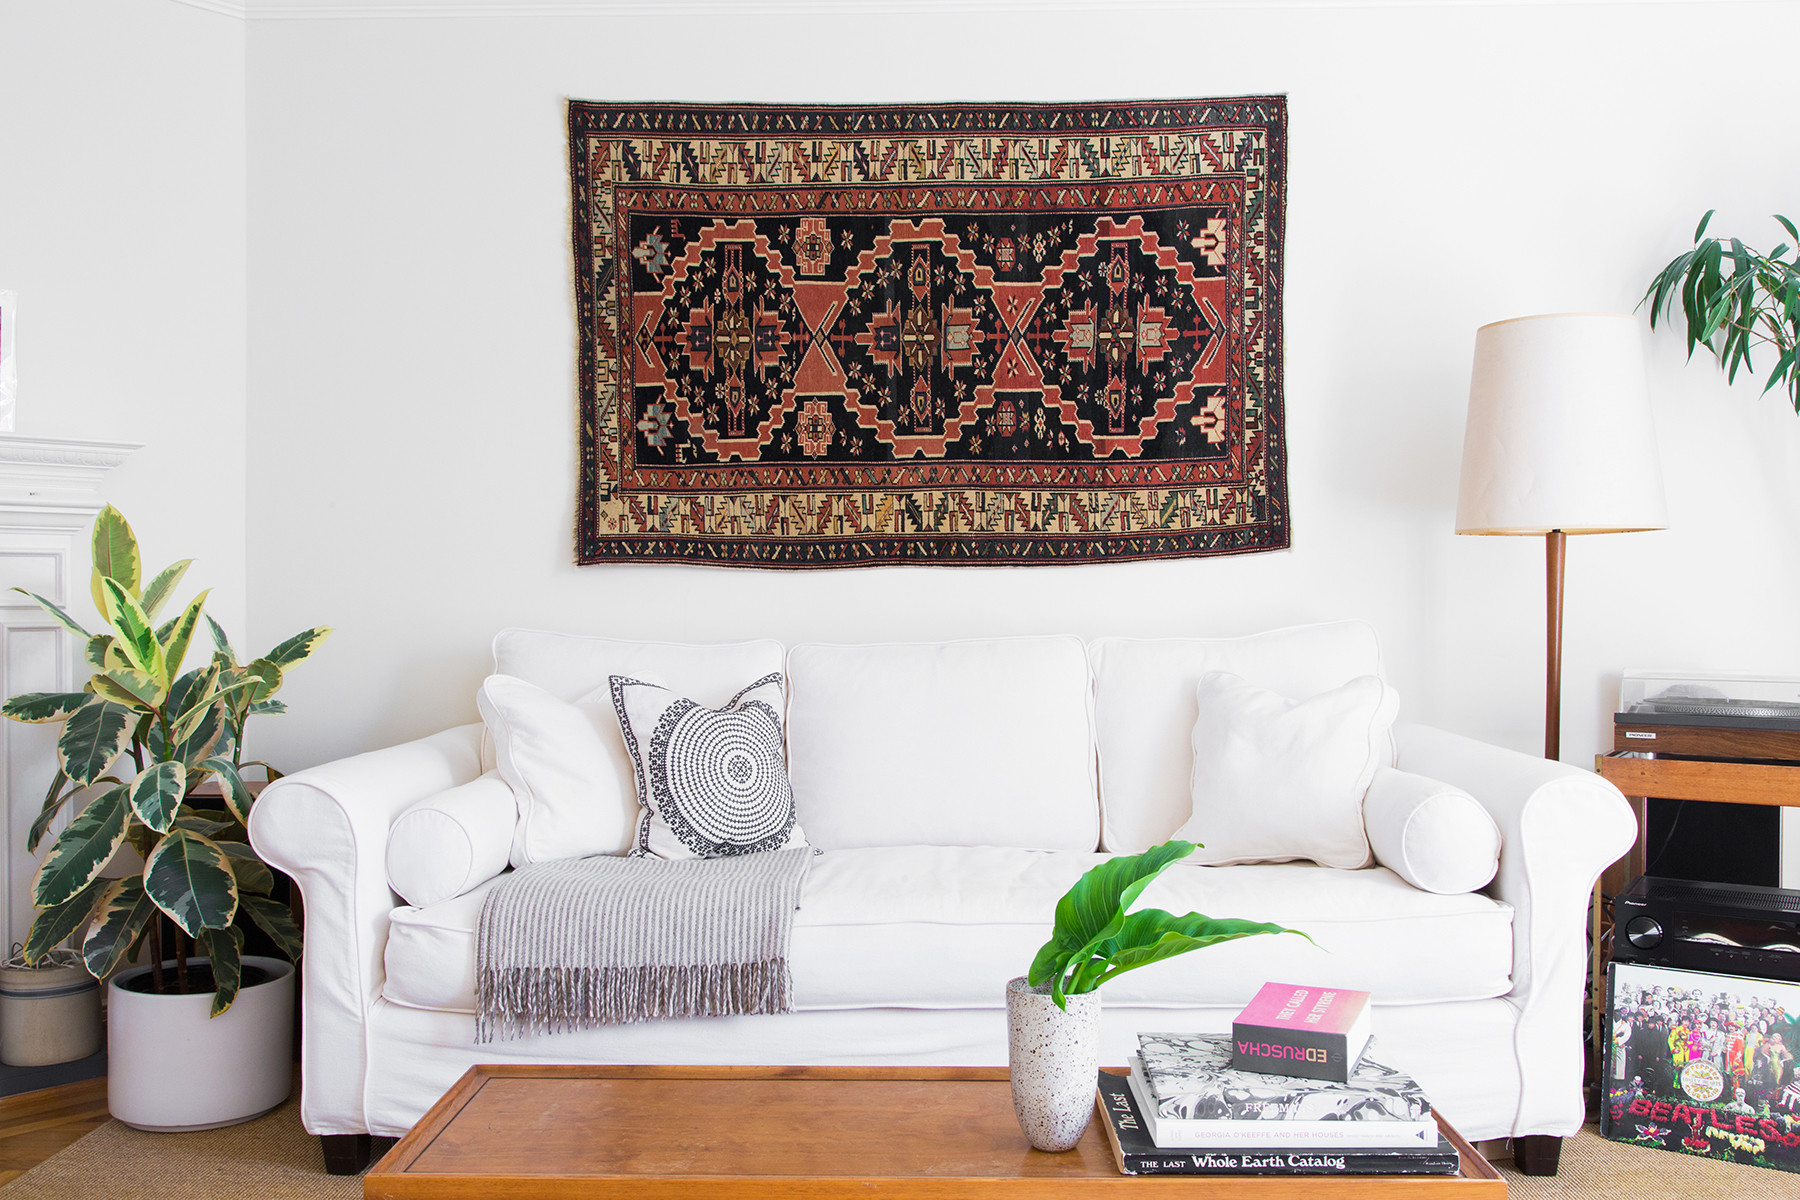 How To Buy A Persian Rug Online